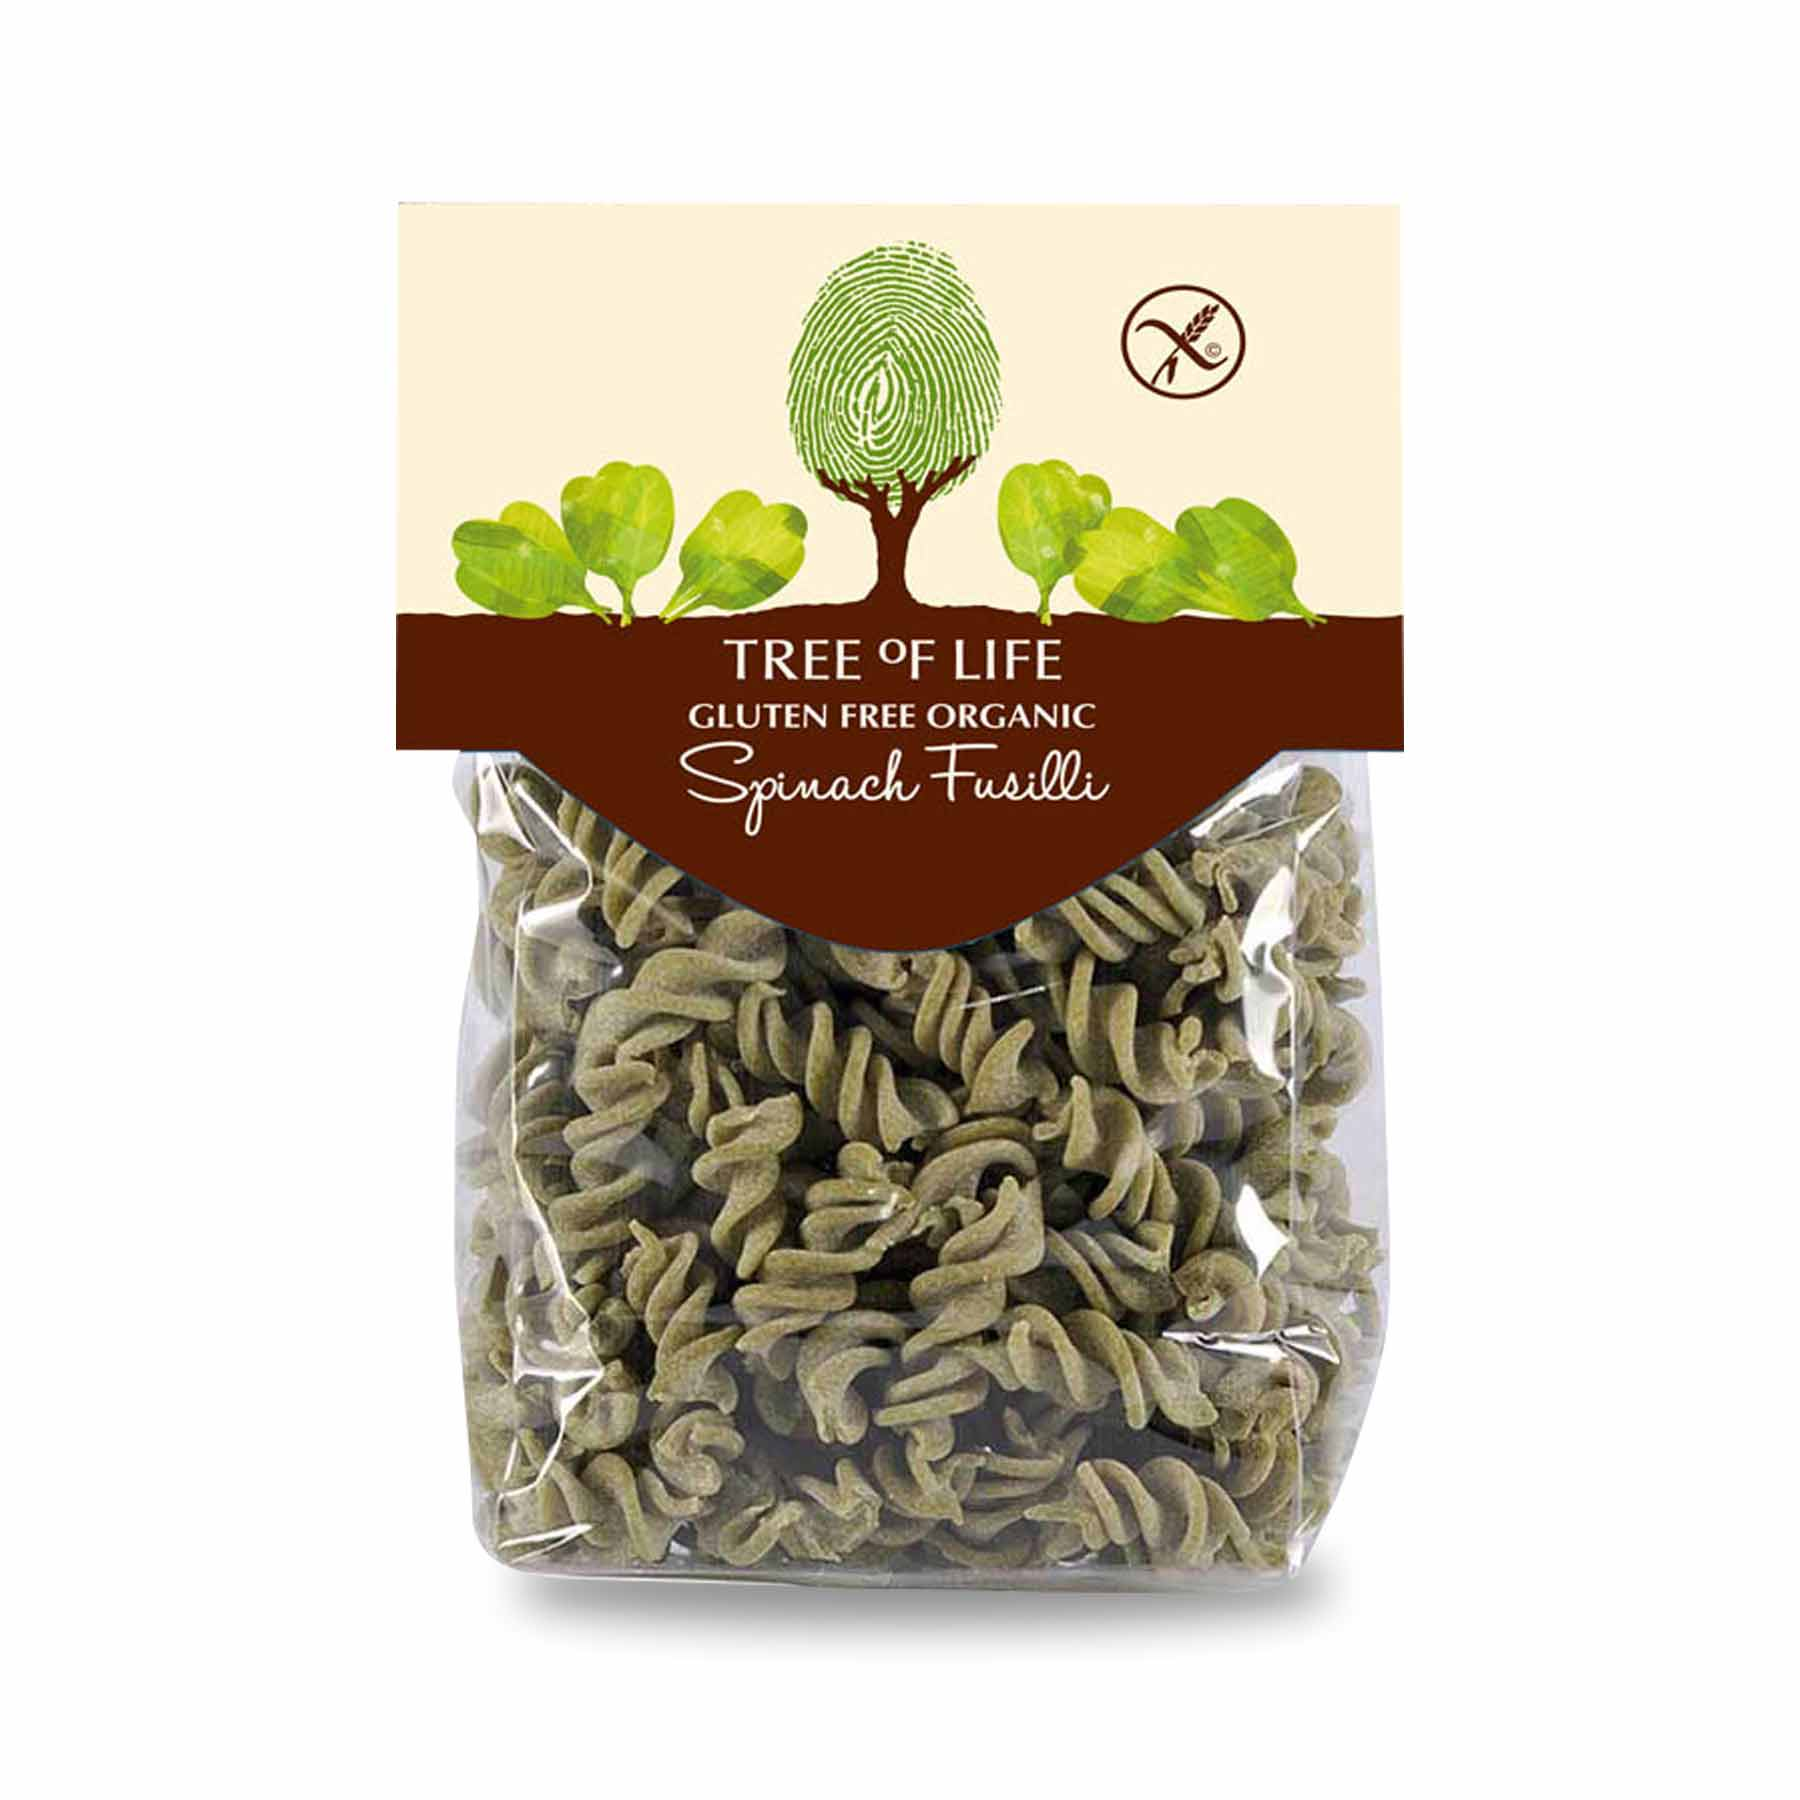 Packshot - Organic Spinach Fusilli by Tree of Life